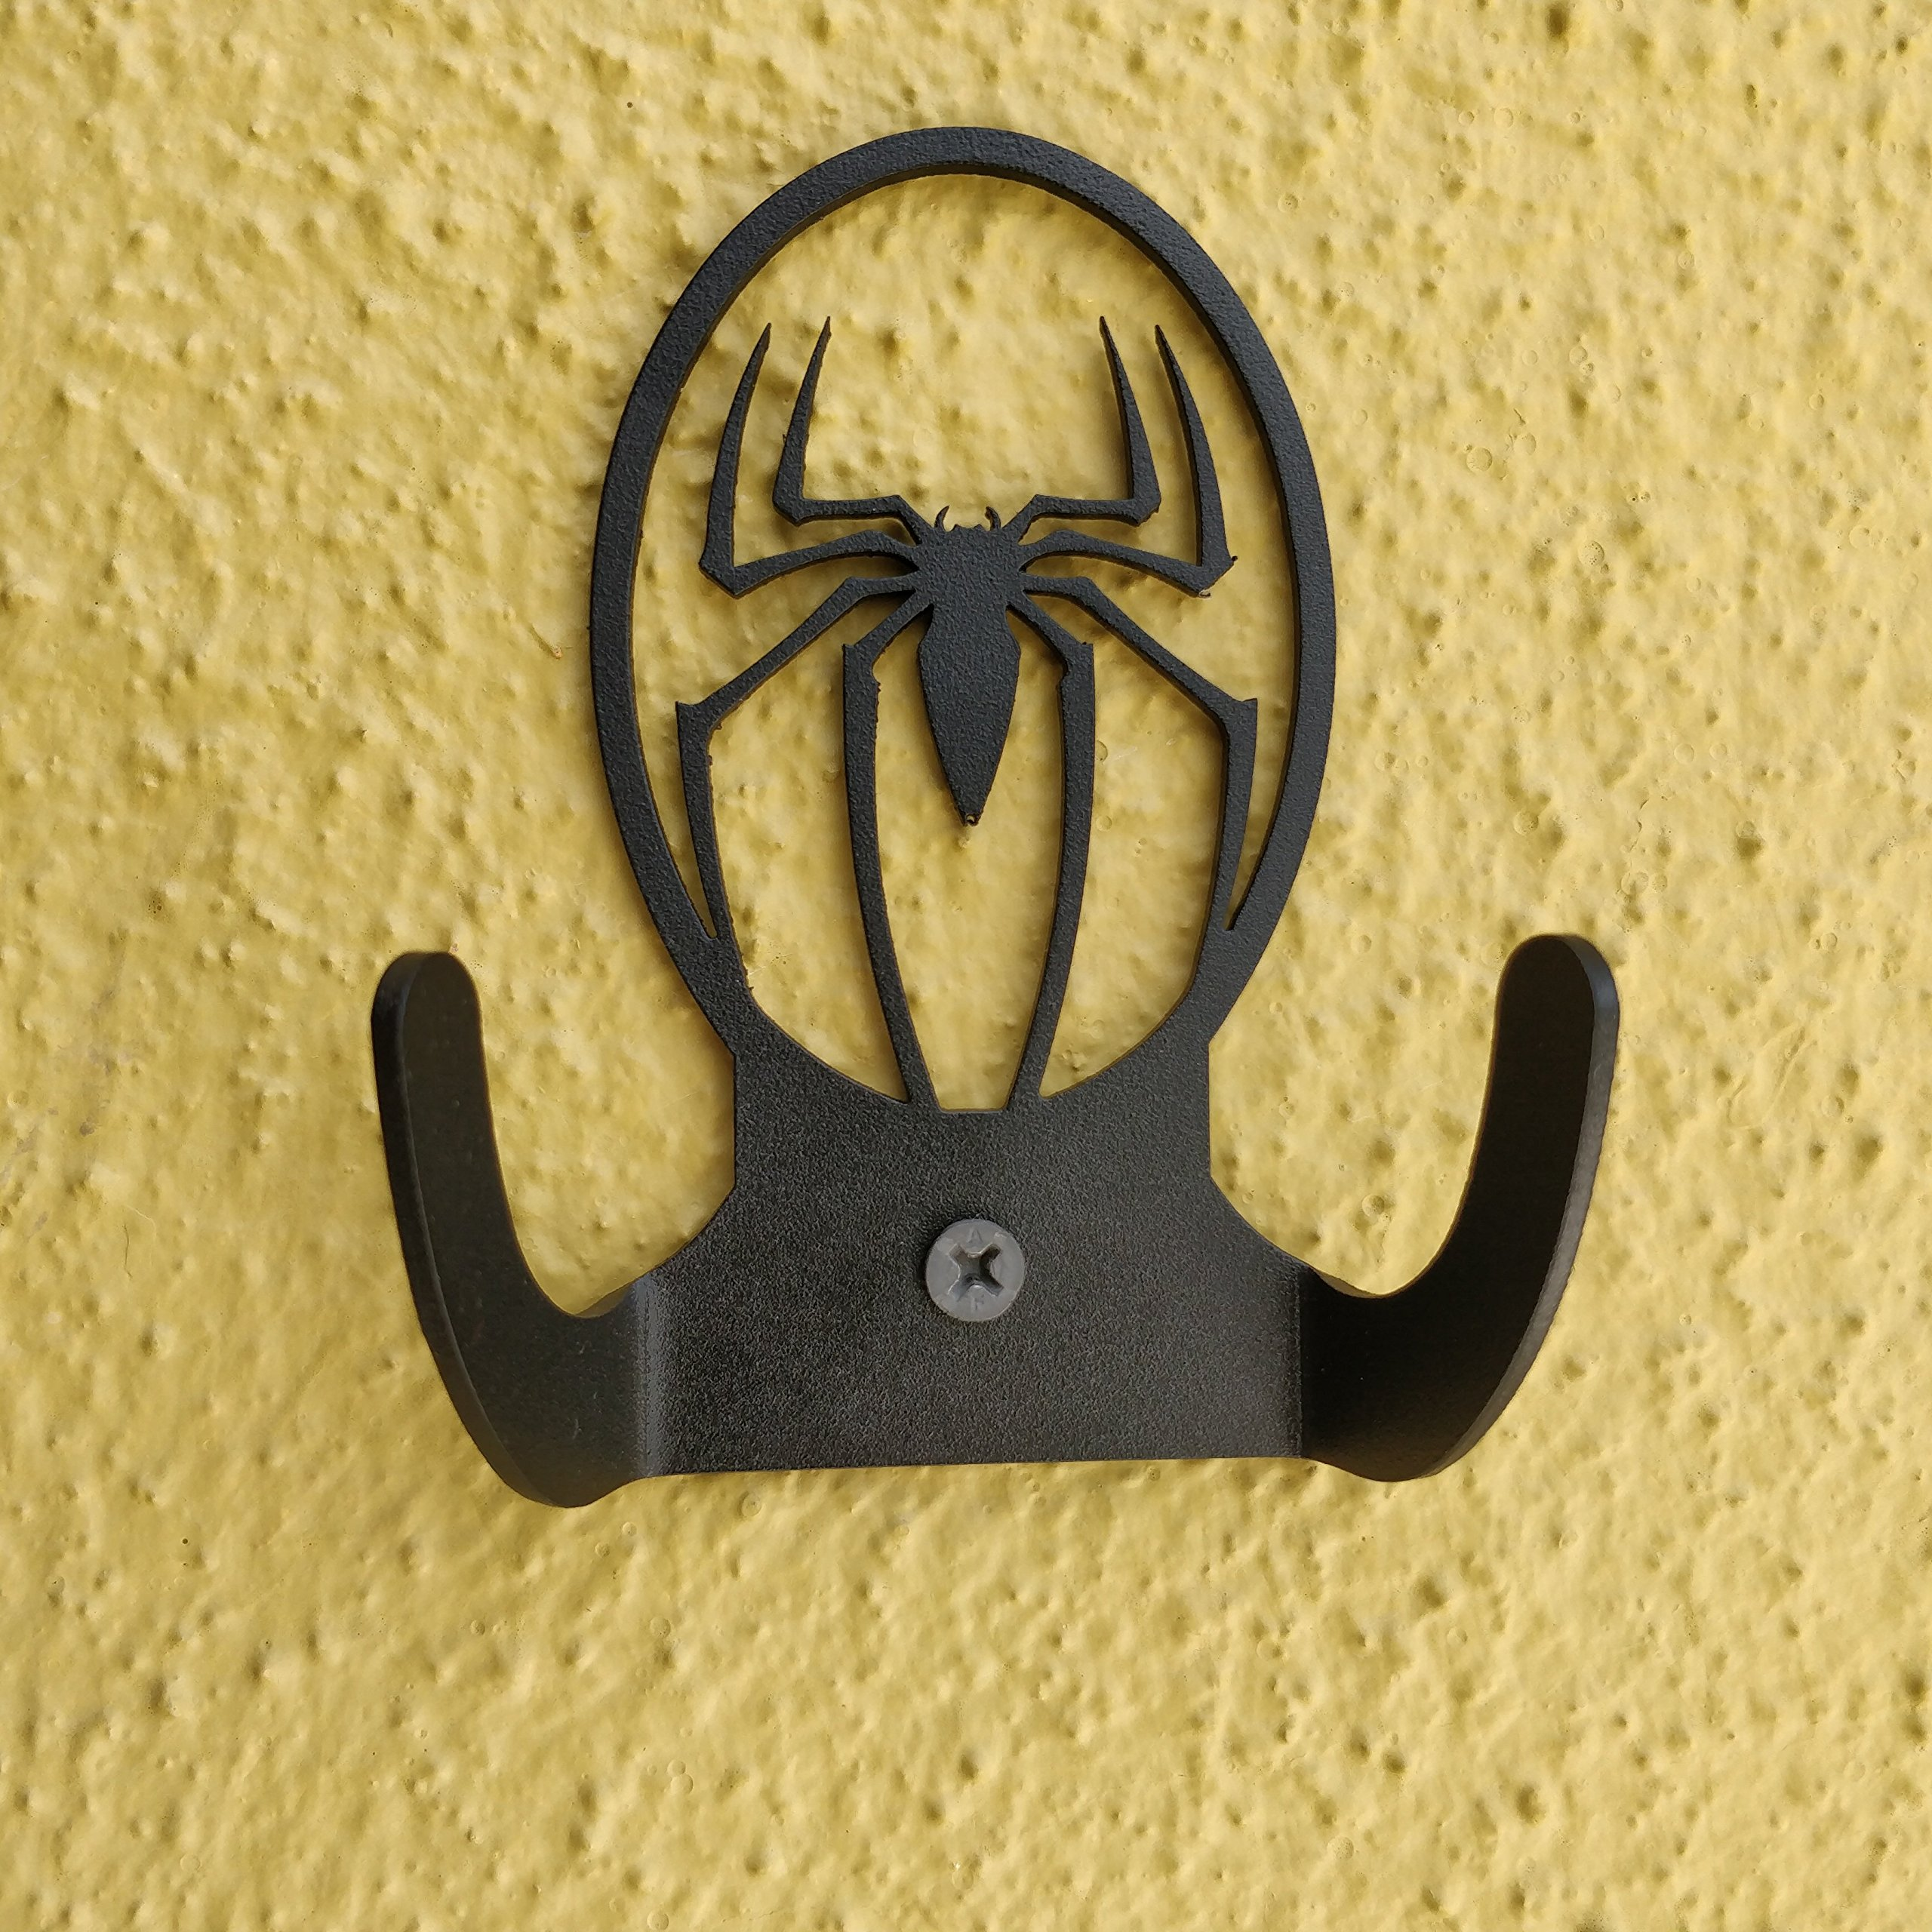 HeavenlyKraft Spiderman Logo Steel Wall Hook Dual Holder For Living Room Coat Hat Robe Hanger Bathroom Towel Kitchen Strong Heavy Duty Garage Storage Organizer Utensil Hook Single, 4 X 3.14 X 1.4 Inch